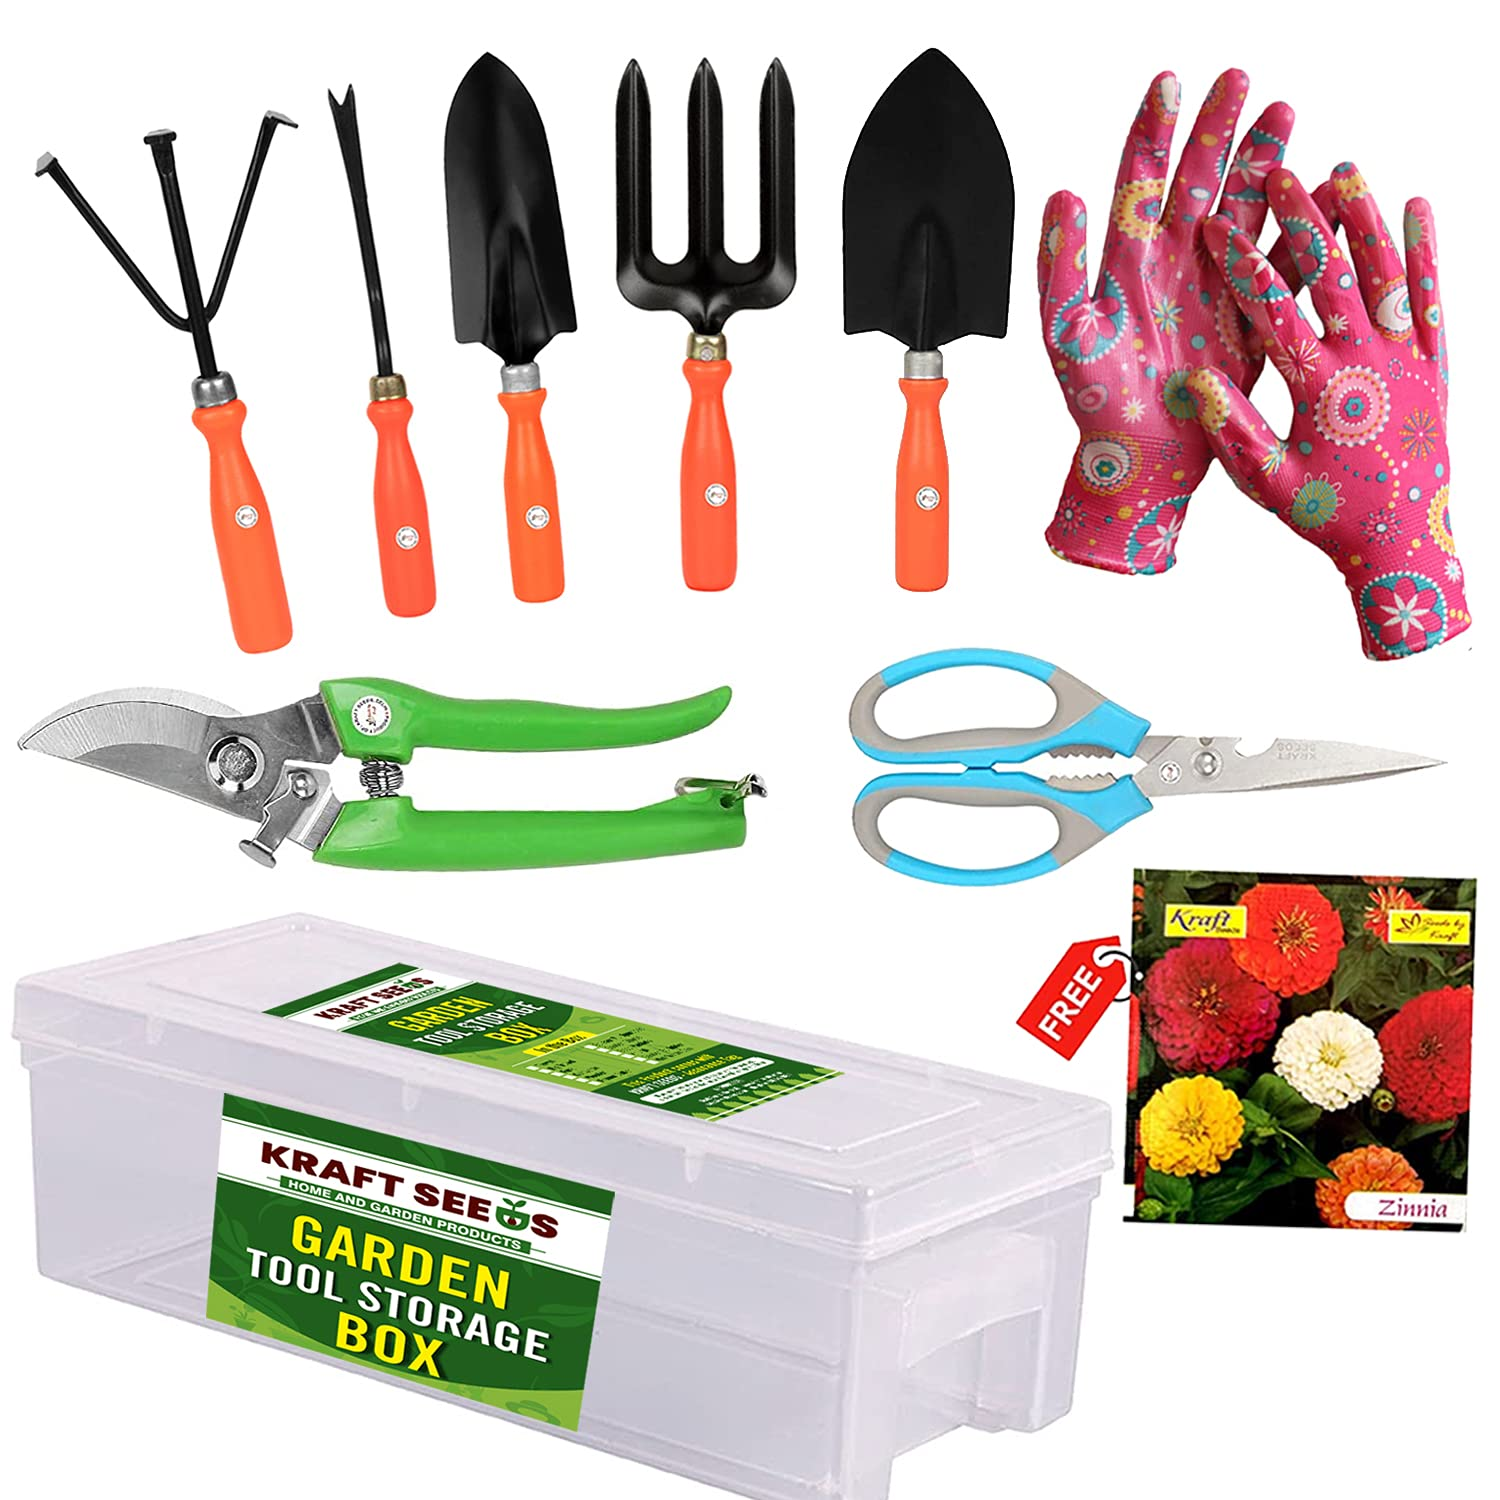 Kraft Seeds! Premium Gardening Tools Storage Box for Your Home and Garden | Gardening Tools Set with Gate Garden Spectacular Gardening Tools Set with Heavy Gardening Cut Tool and One Pair Hand Gloves